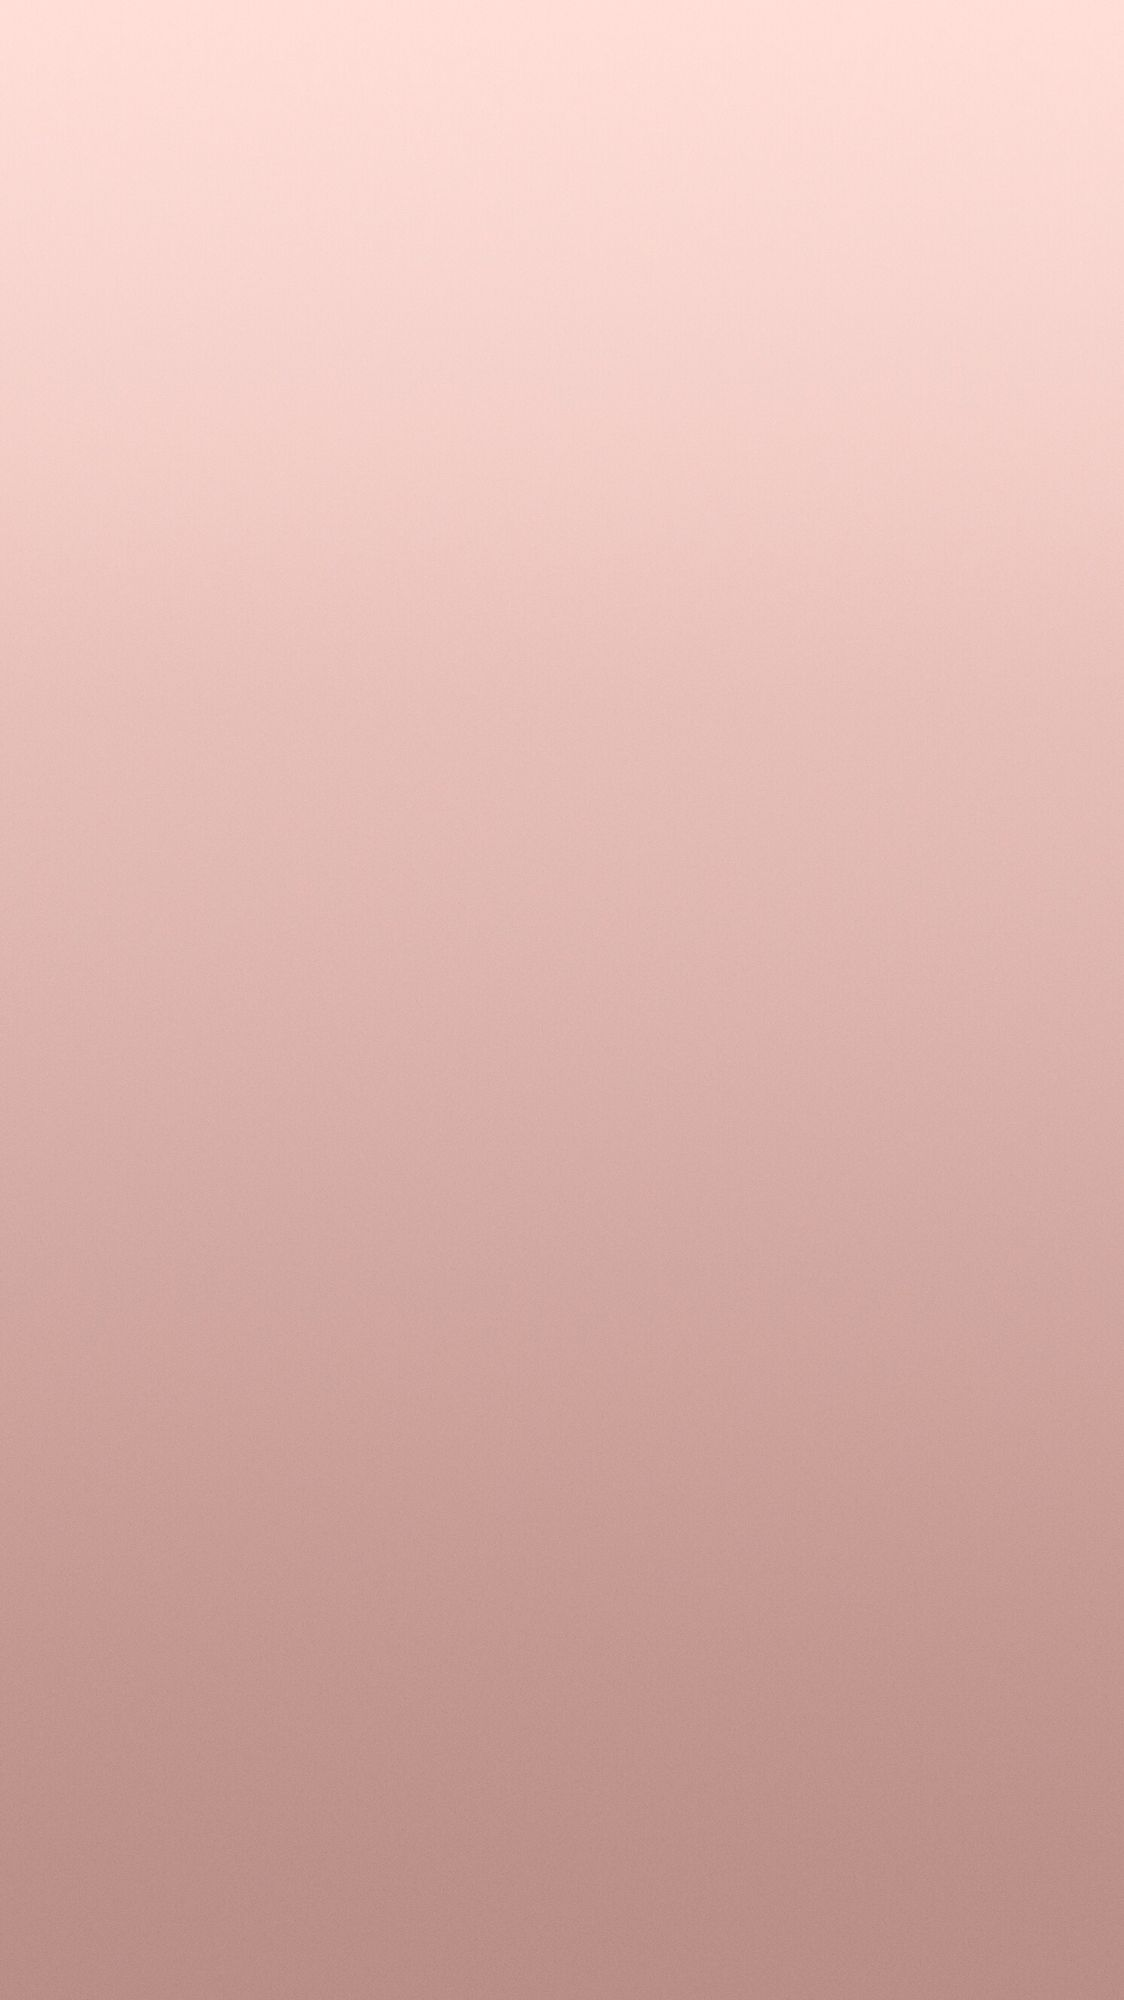 Iphone 6s Plus Rose Gold Wallpapers Papel De Parede Cor De Rosa Cobertura De Sofa Fundos Degrade